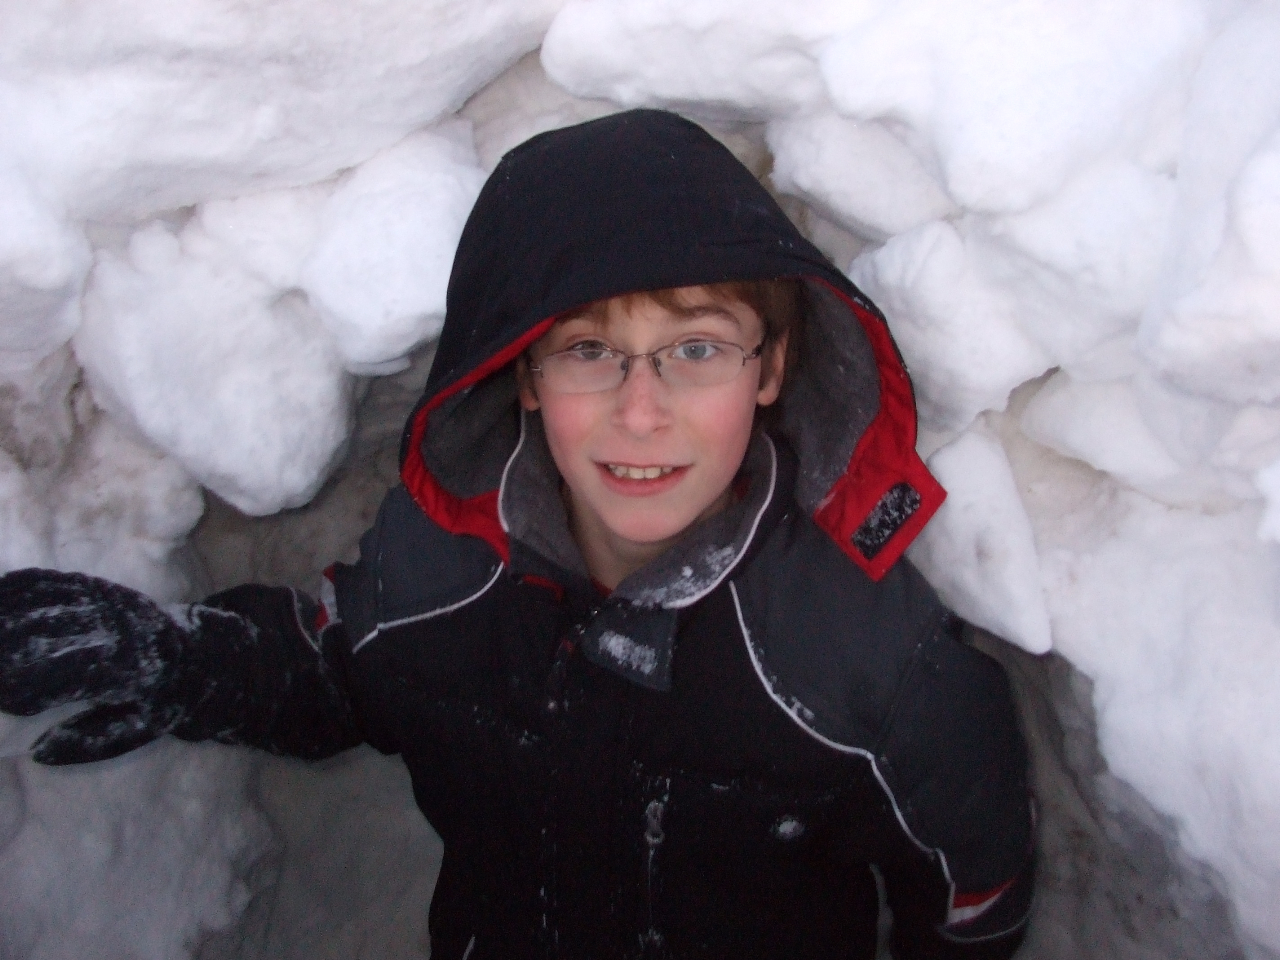 Boy Snow jan3.jpg